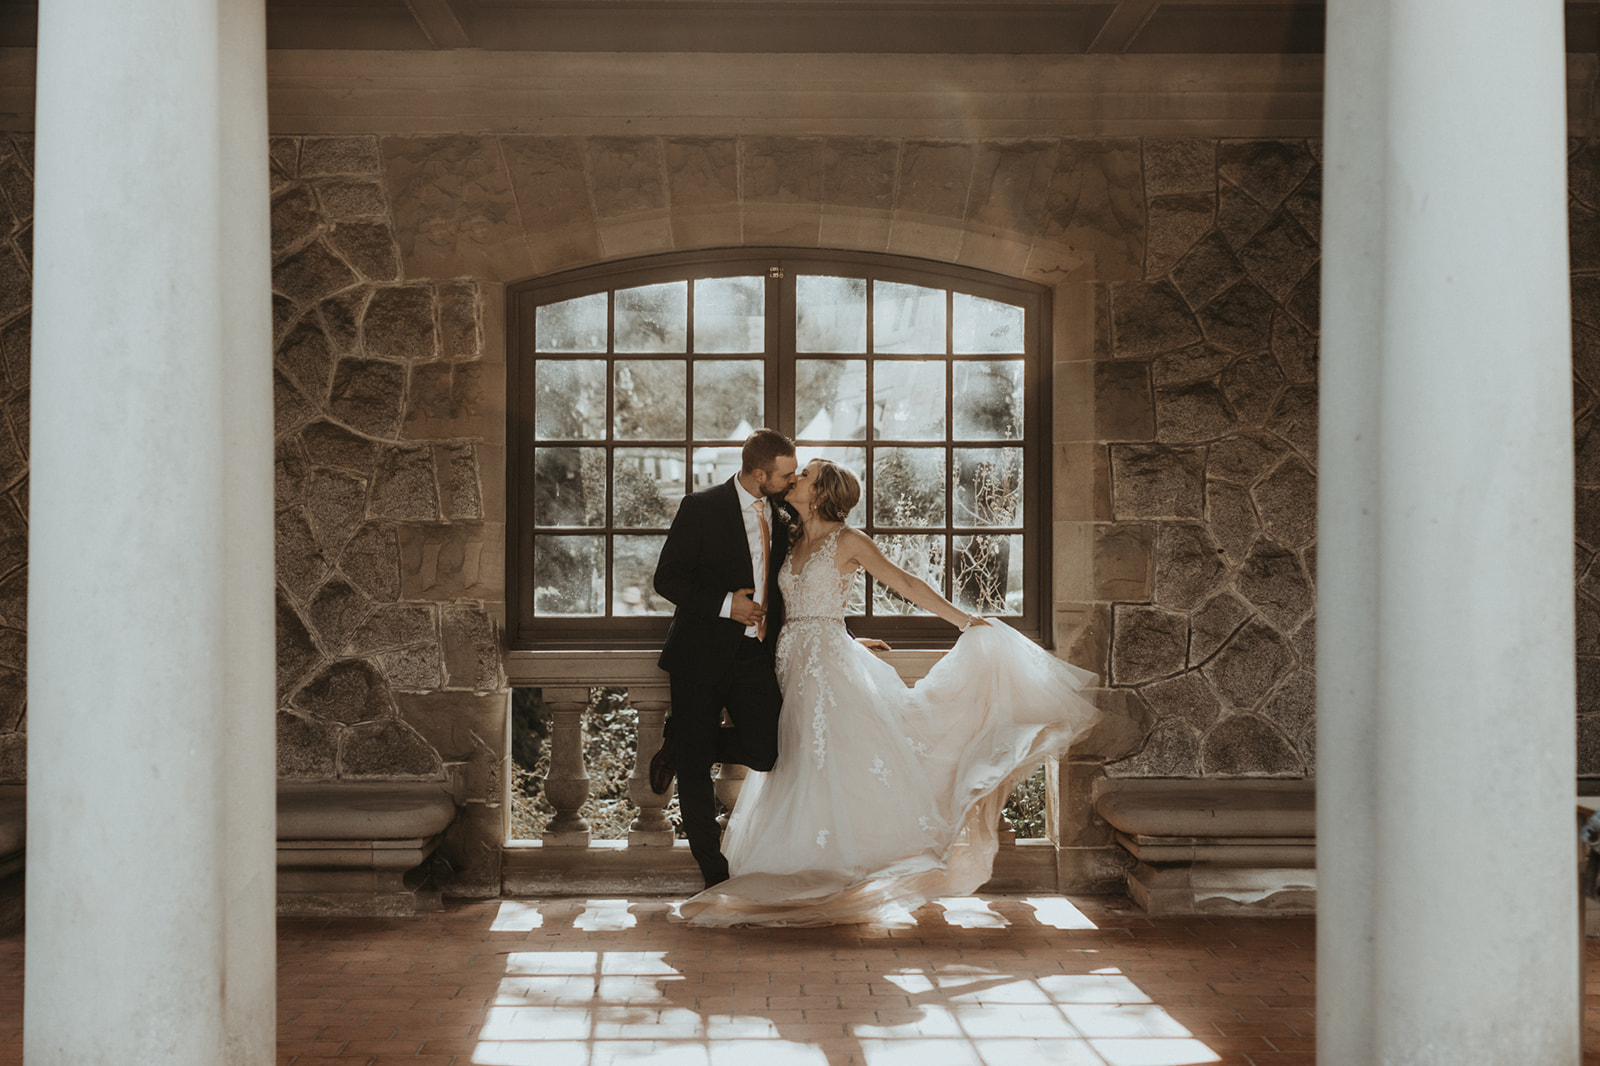 Newlyweds in front of Hatley Castle window as sun pours through on them